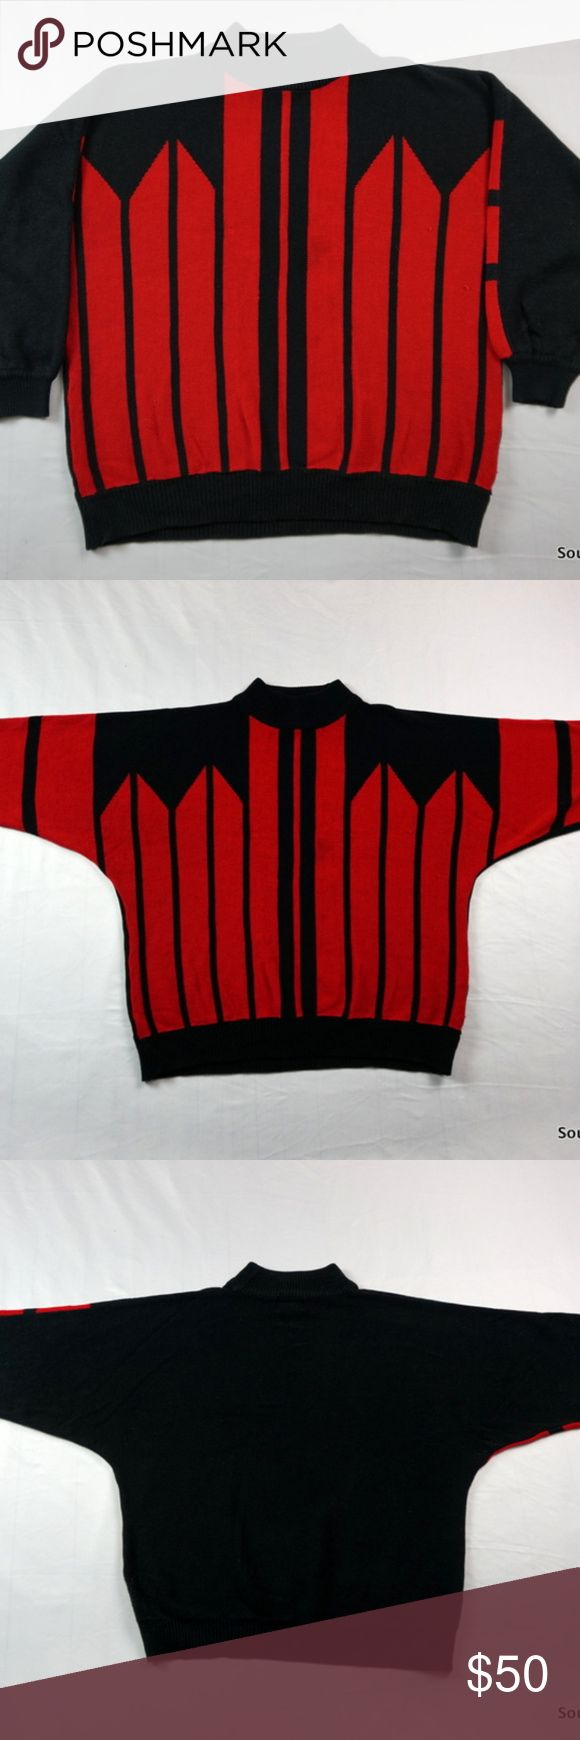 "Vintage 60s Helen Harper Sweater Red / Black XL Vintage 50s/60s Helen Harper Red & Black Sweater Women's Extra Large, XL, Acrylic, Vintage Sweater  Brand:     Helen Harper Size:        Men's XL / Extra Large Color:      Black/Red Material: 100% Acrylic   Detailed Measurements  Sleeves                 25"" inches Underarm: 	       25"" inches Length:      	       26"" inches Helen Harper Sweaters Crew & Scoop Necks"